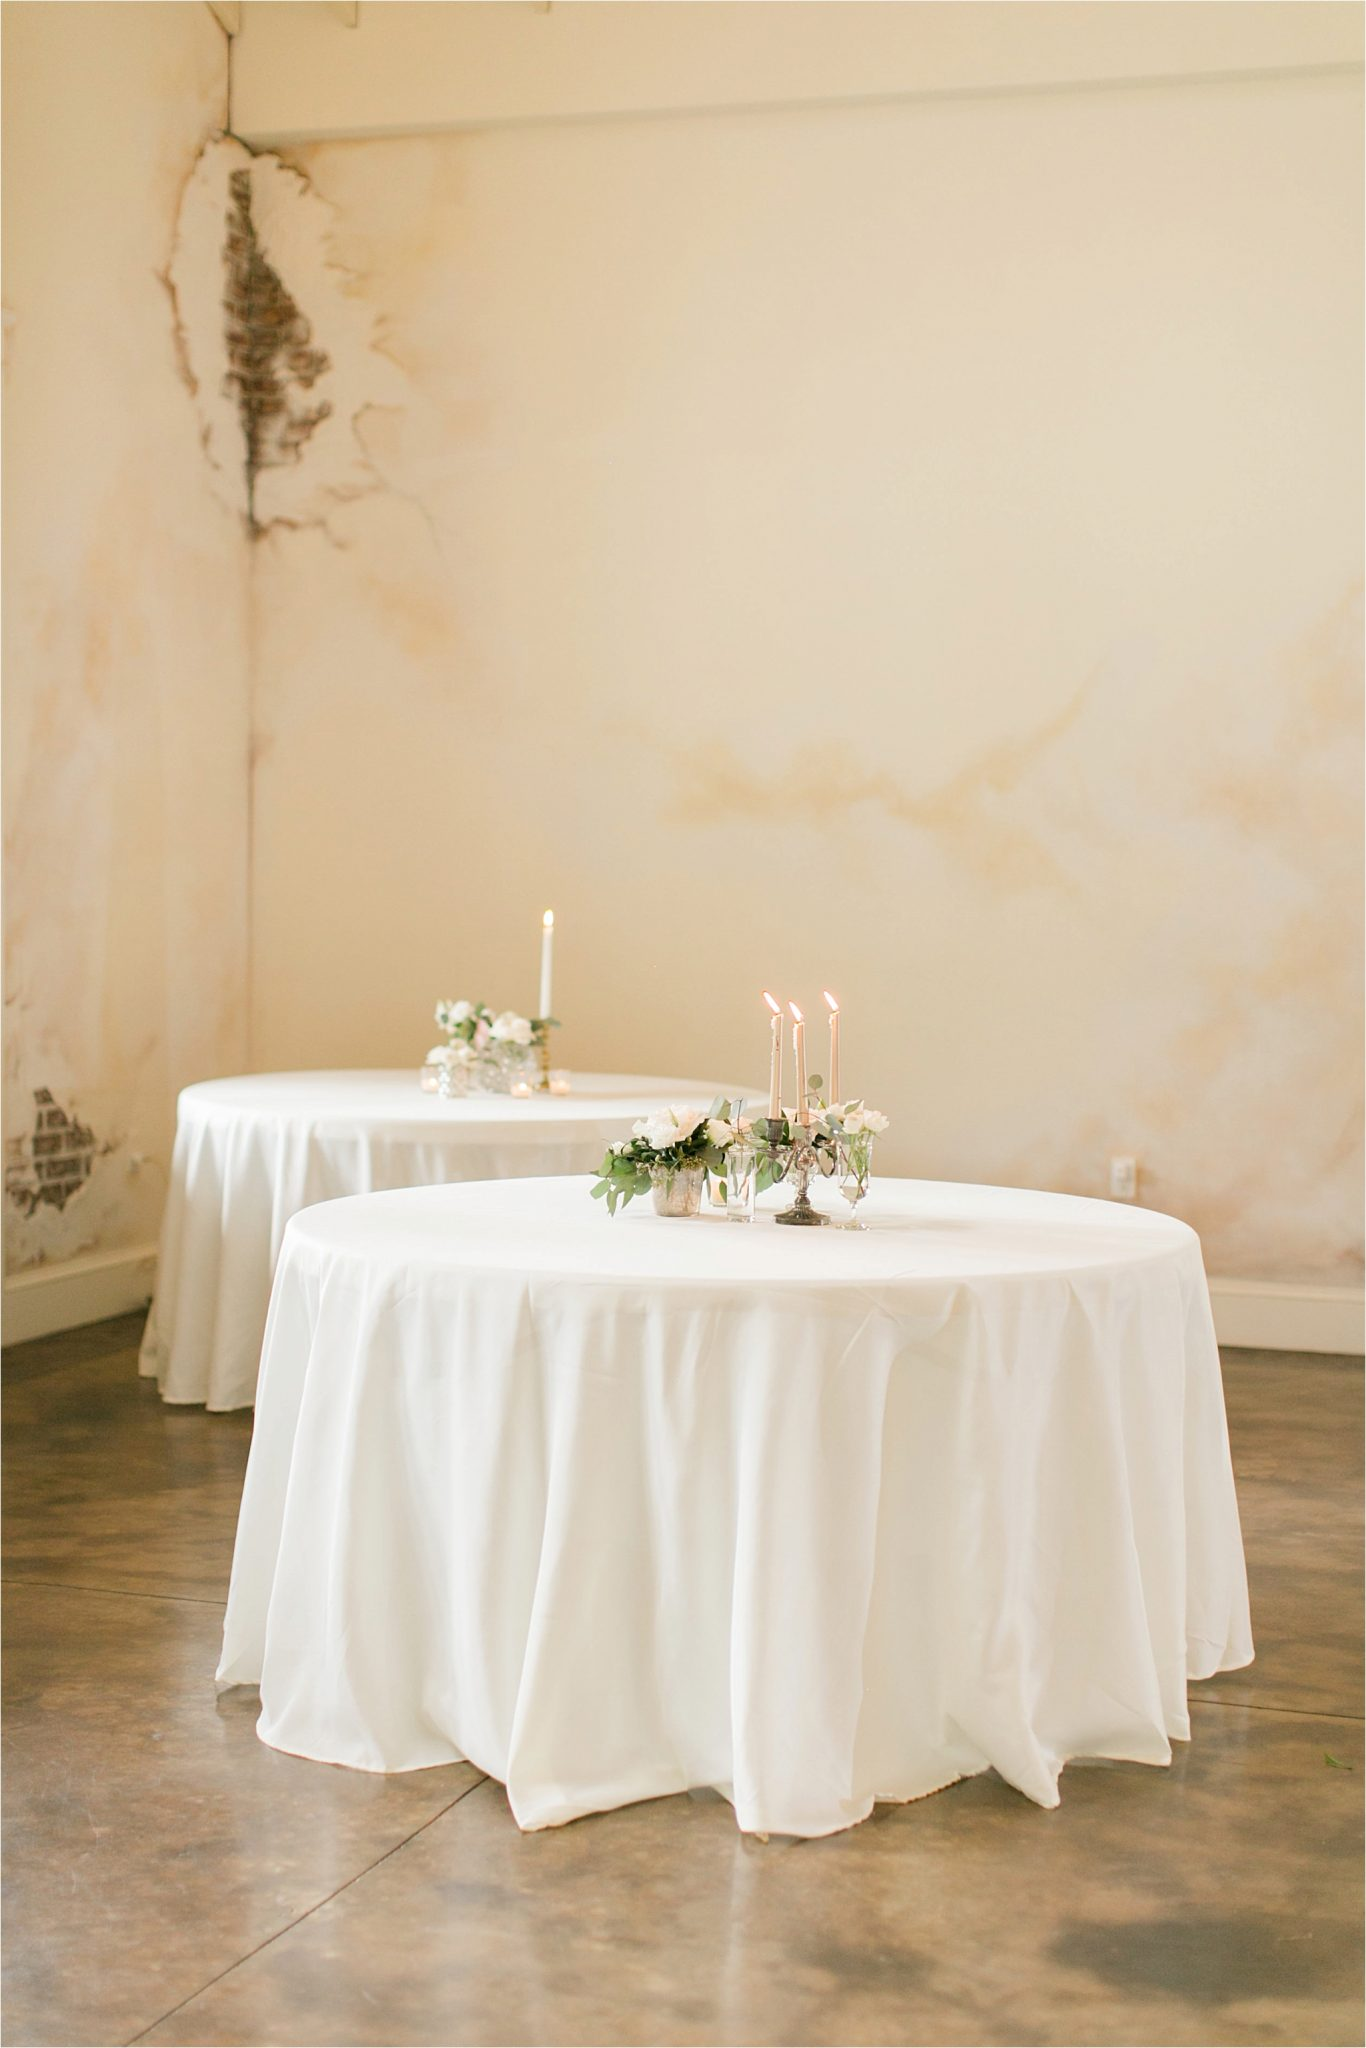 reception space-wedding-refurbished-bella sera gardens-minimalist reception